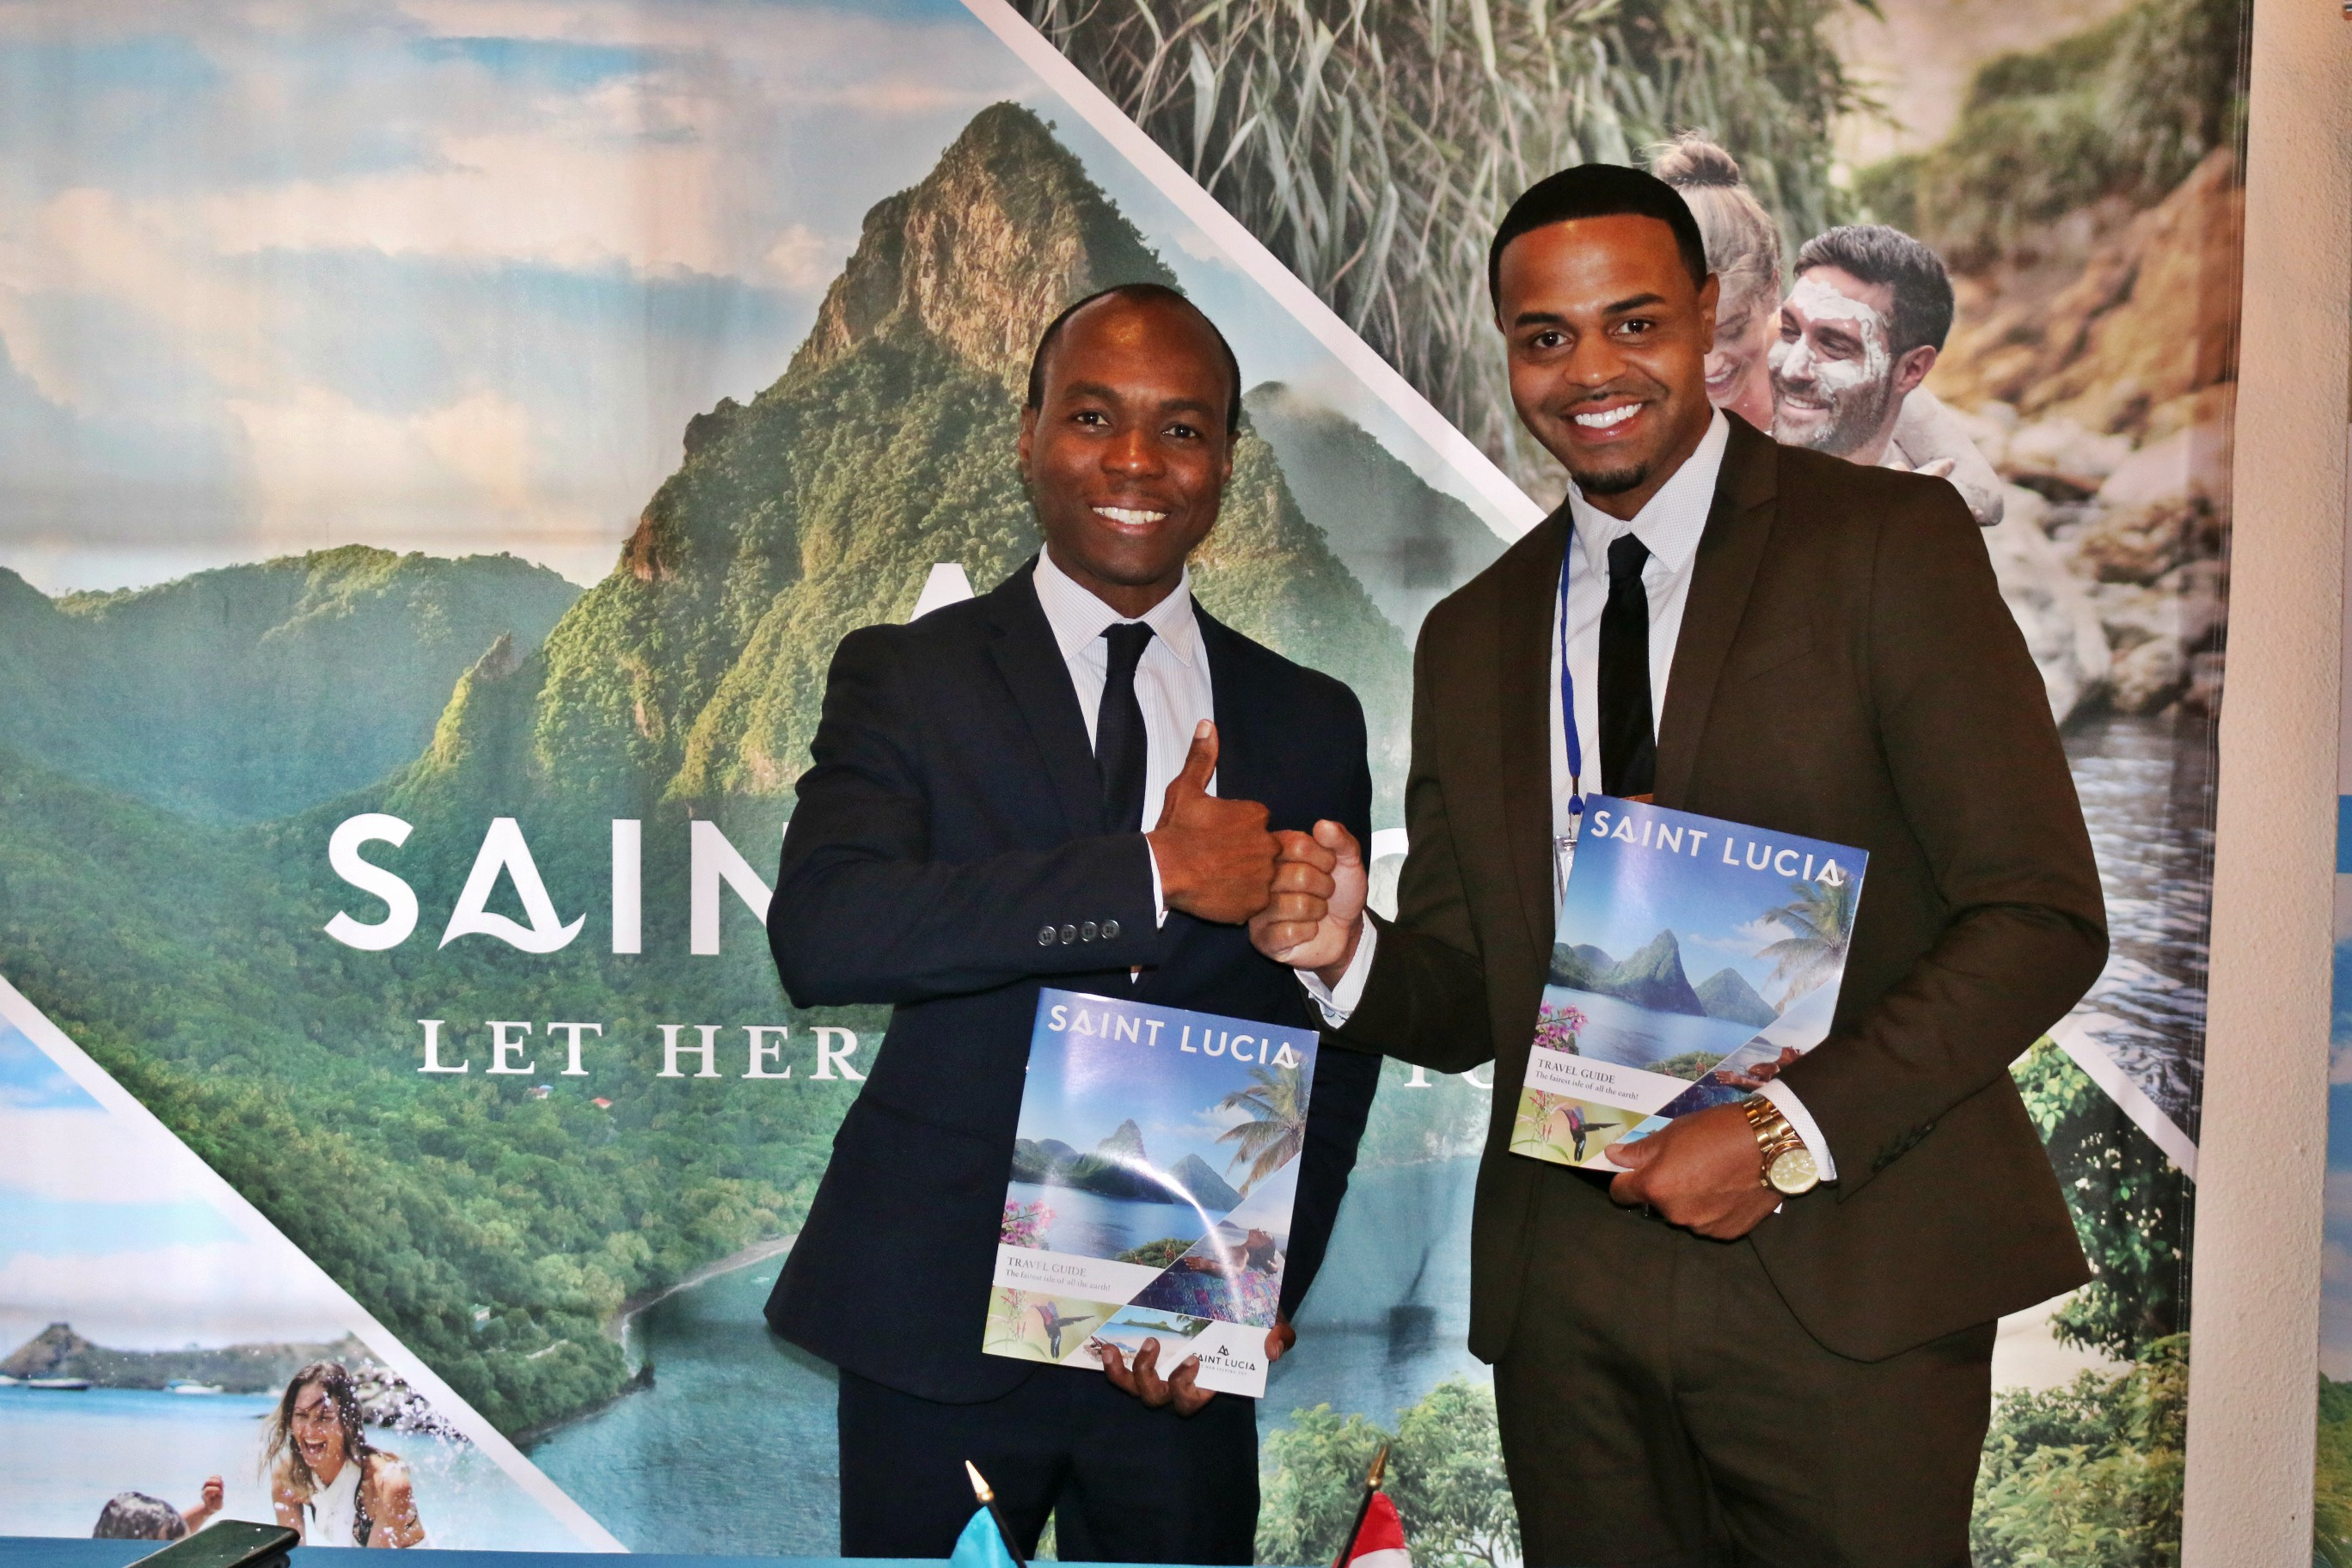 Dominic Fedee, Chair of the CTO and Minister of Tourism, Saint Lucia, and Andrew Ricketts, TOTAL Public Relations